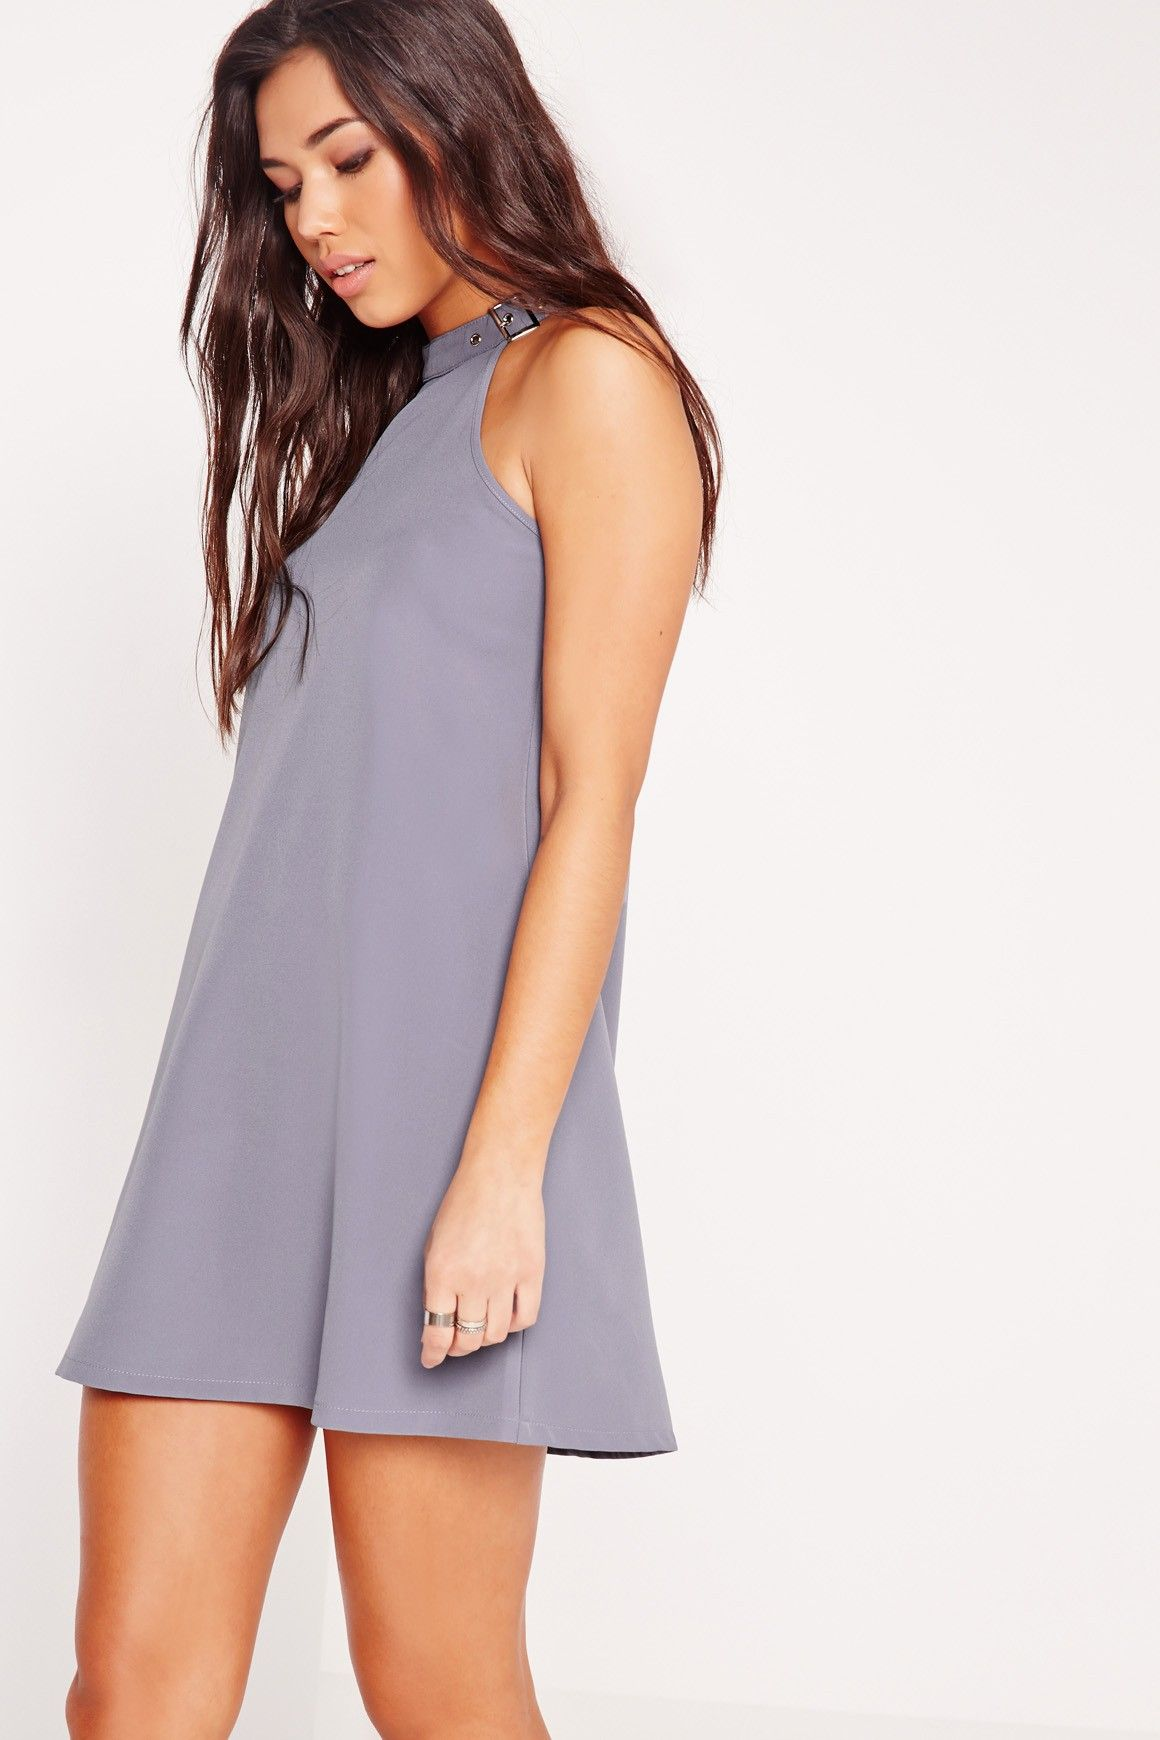 Shift your look up a notch in this buckled beaut the shift style is